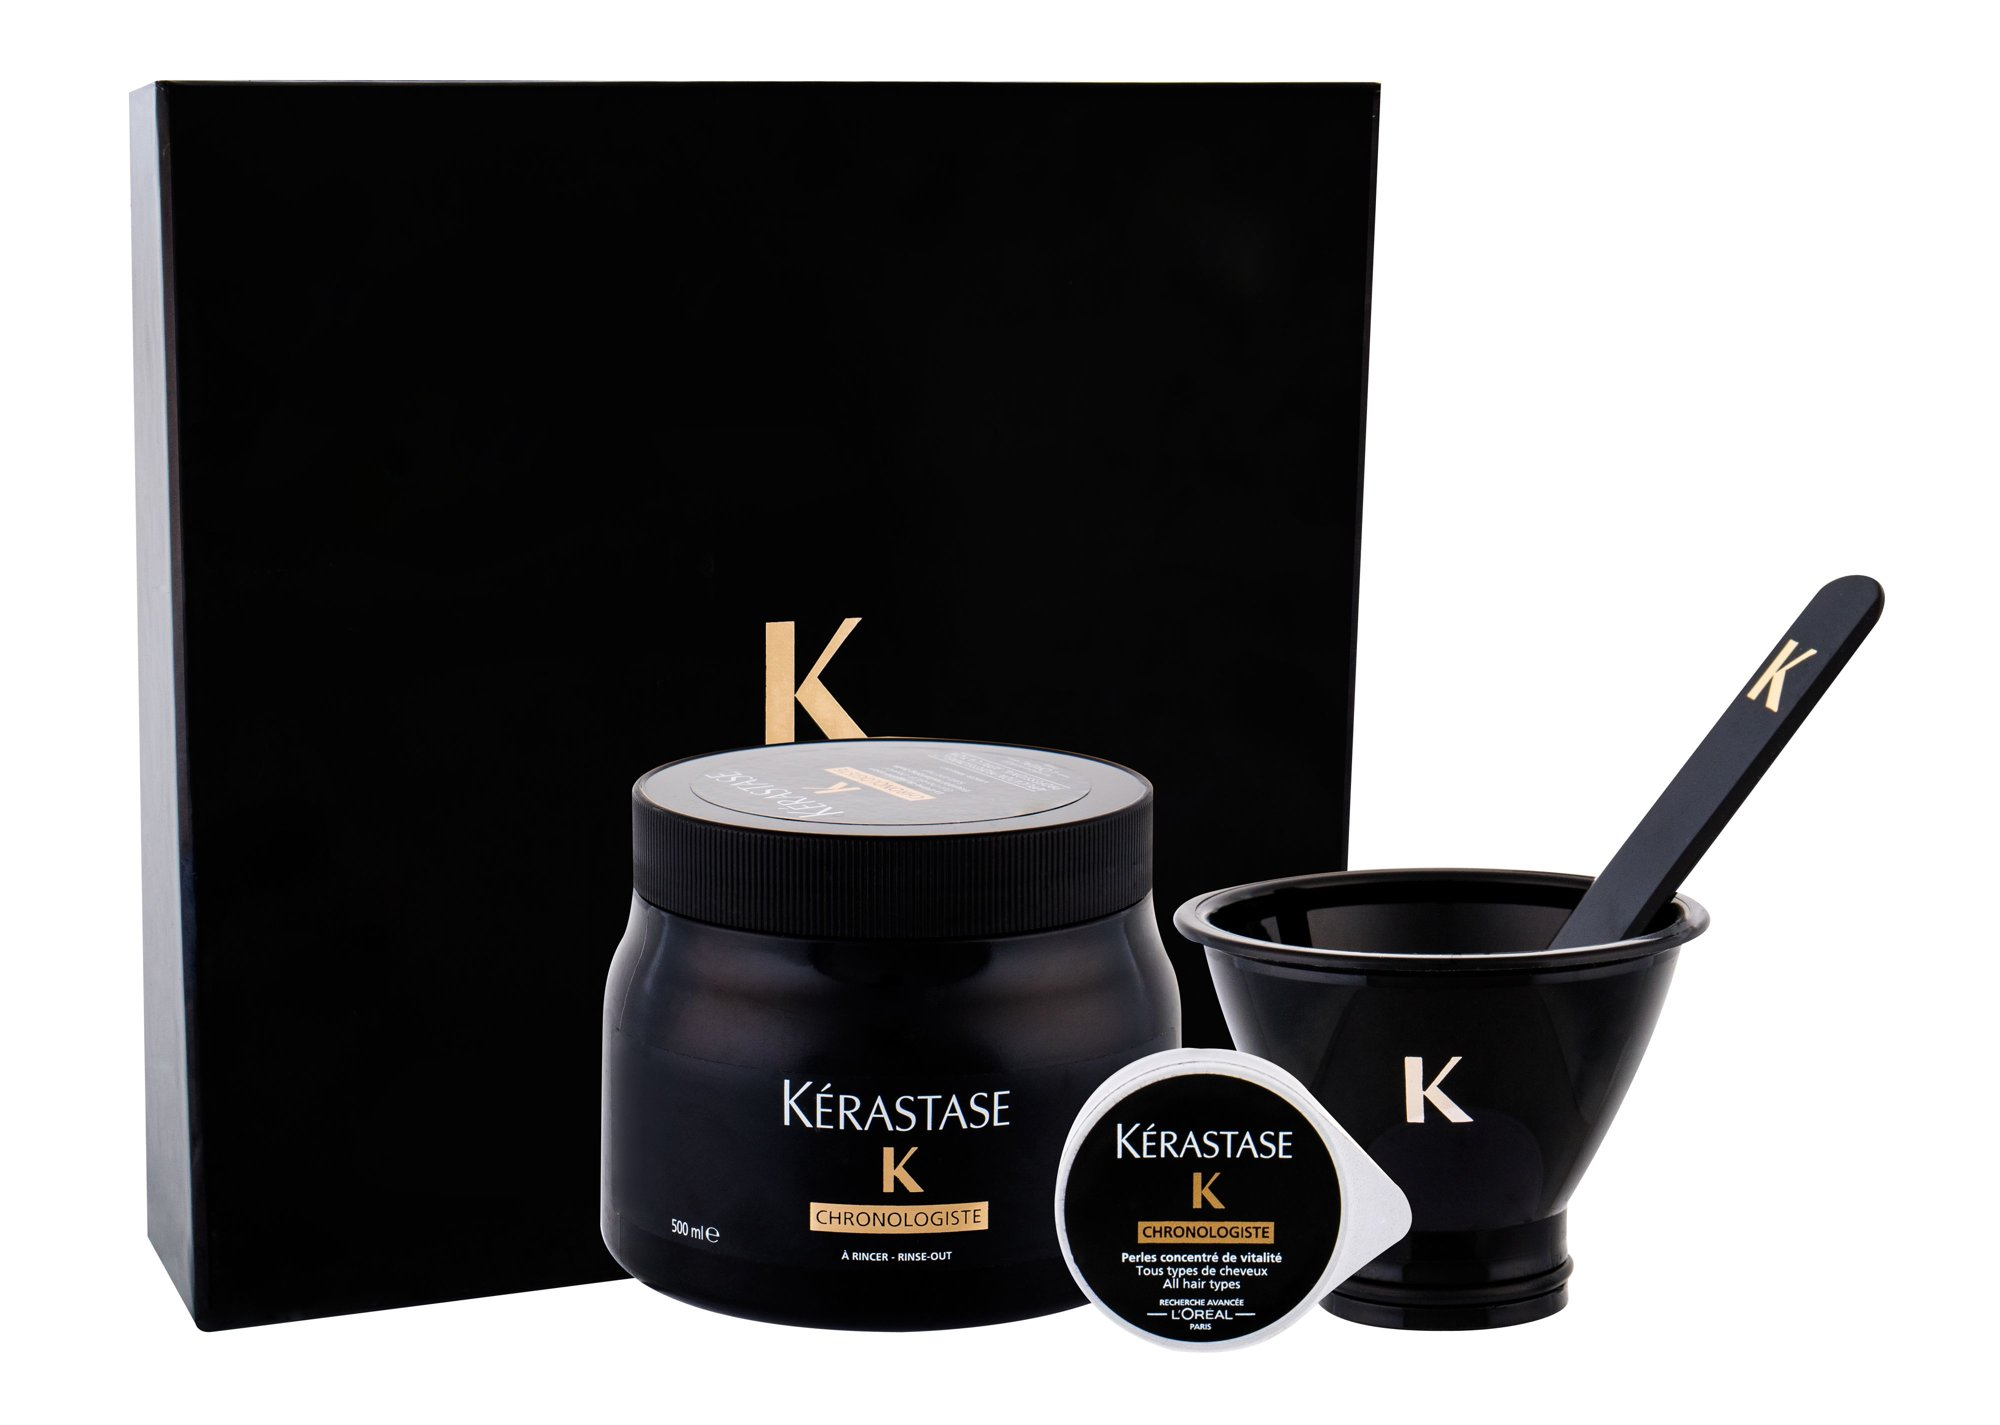 Kérastase Chronologiste Hair Balm 500ml